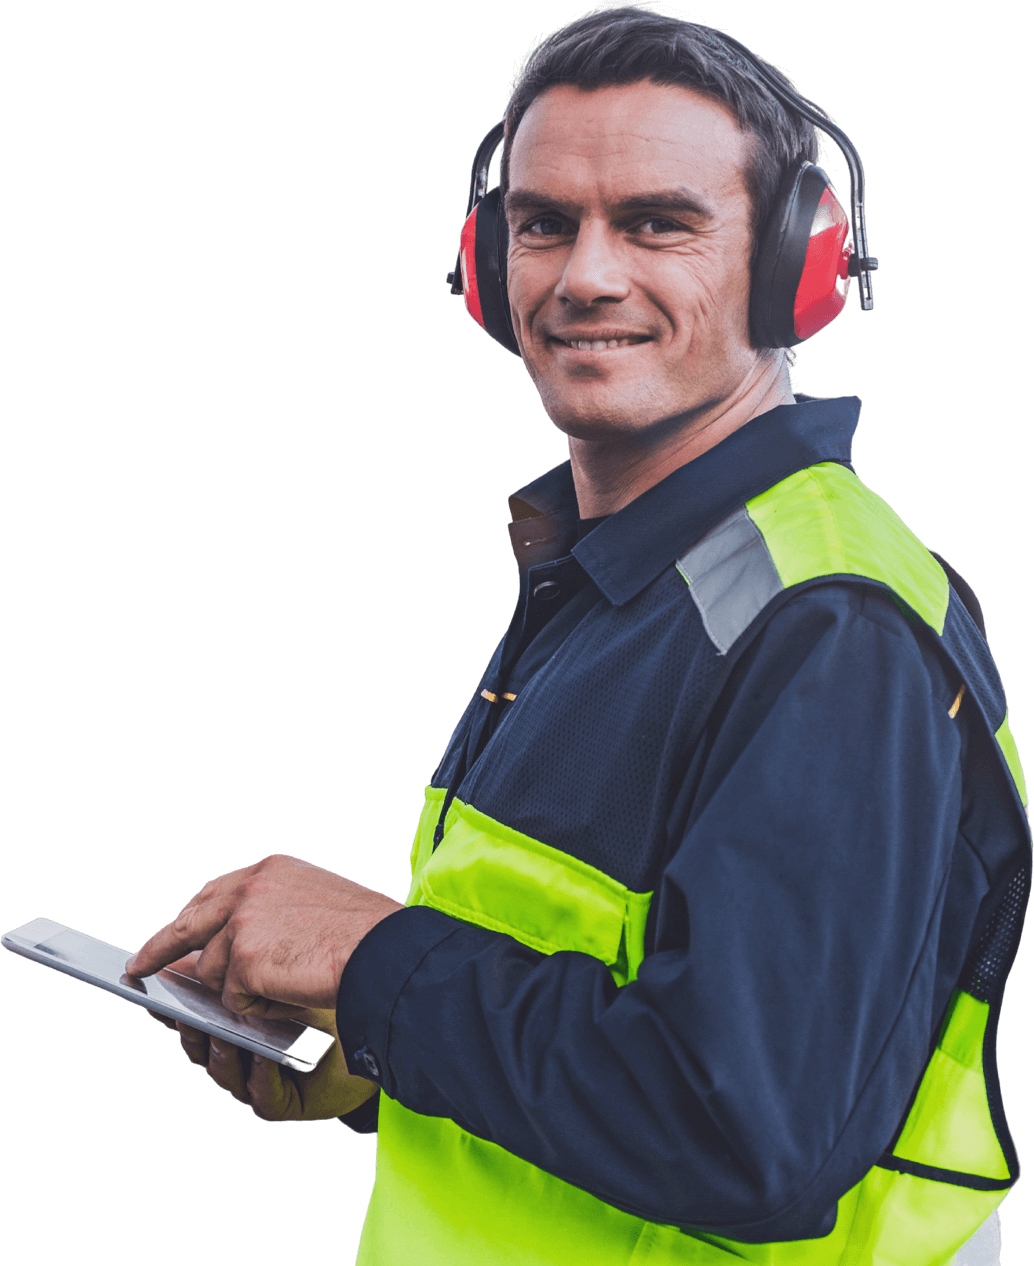 Ground worker with ear muffs on looking at information on a device on a transparent background.